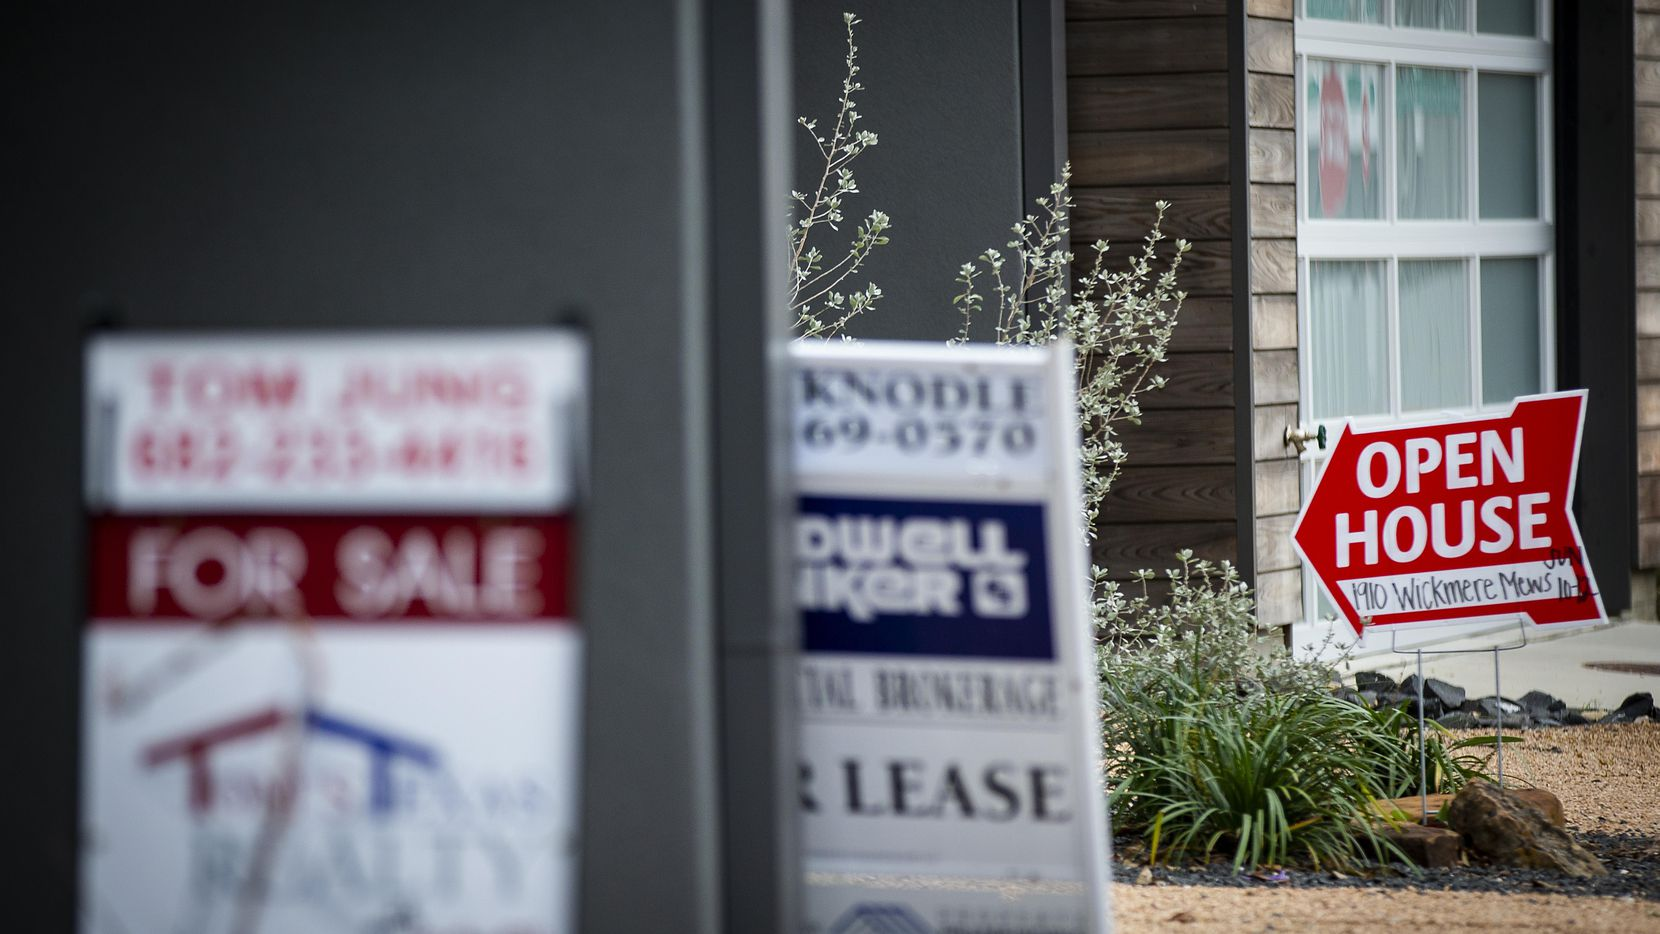 Dallas ranks seventh on Zillow's list of the top U.S. home markets.